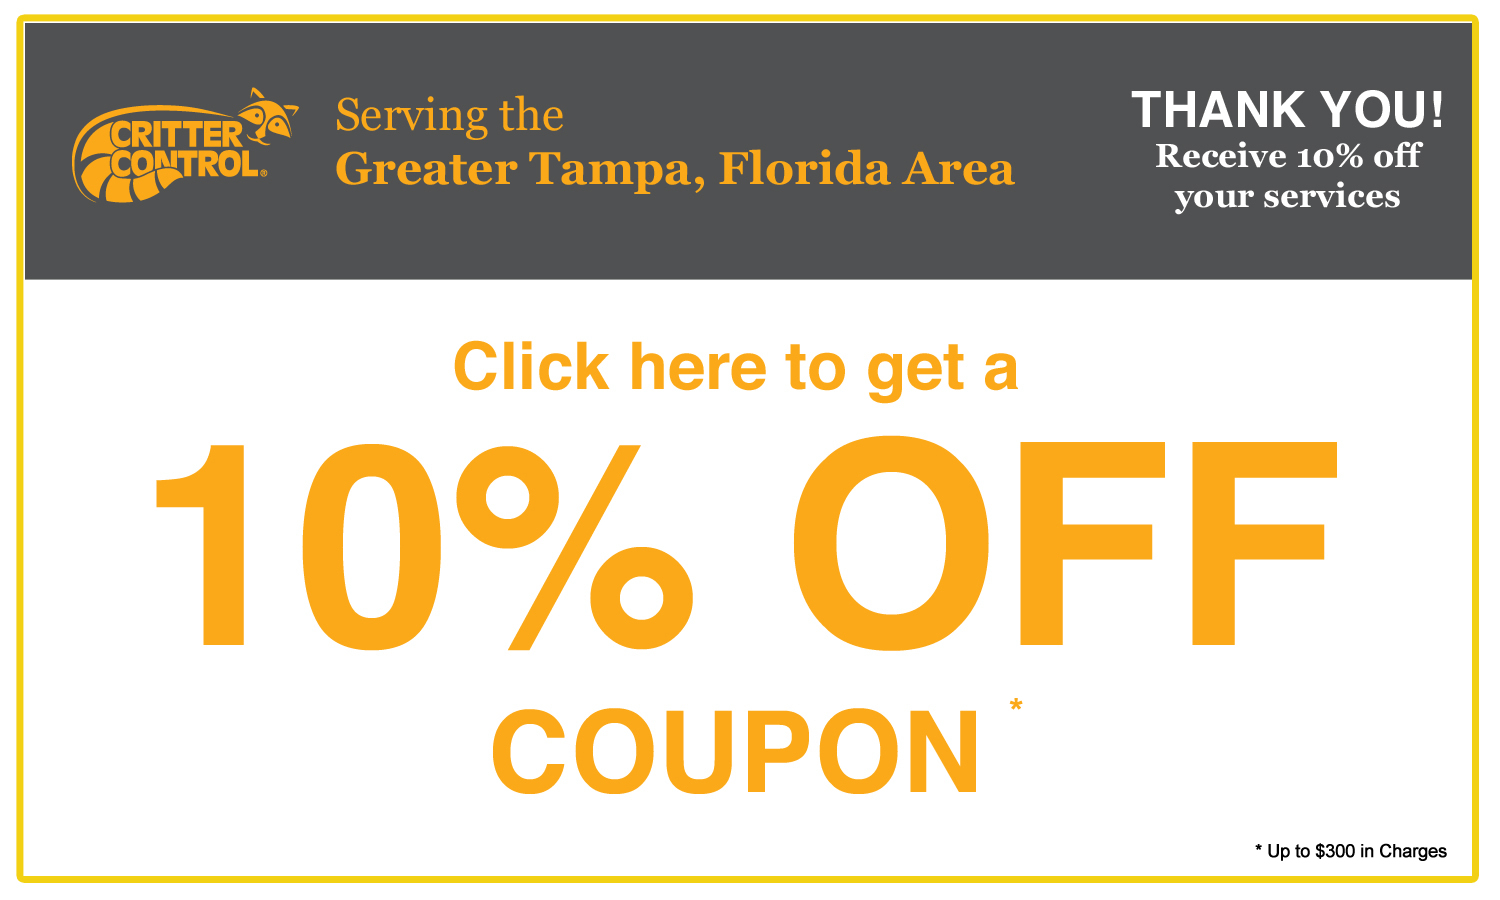 Coupon clipping service tampa florida